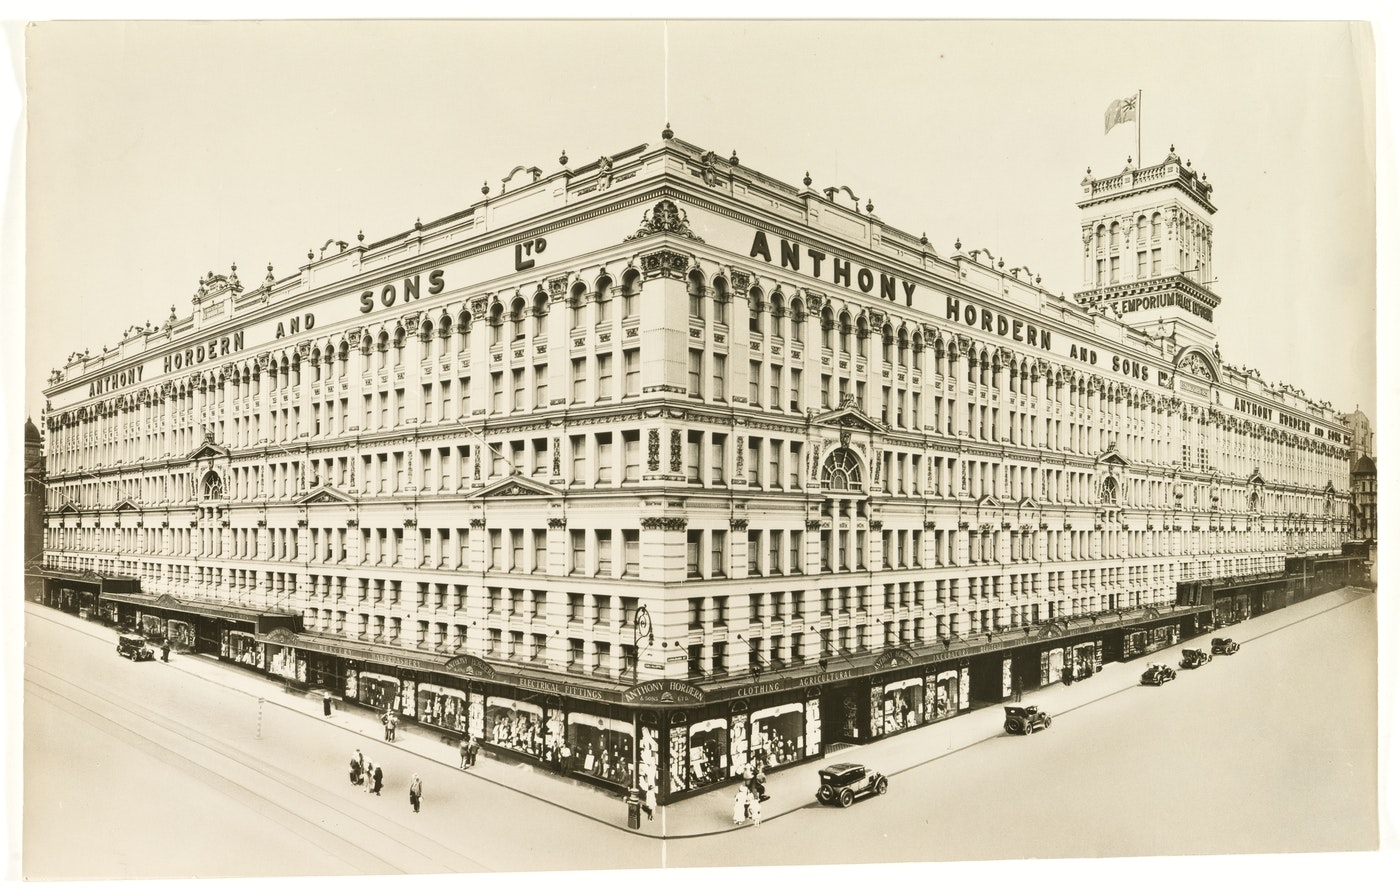 Picture of Anthony Hordern and Sons department store